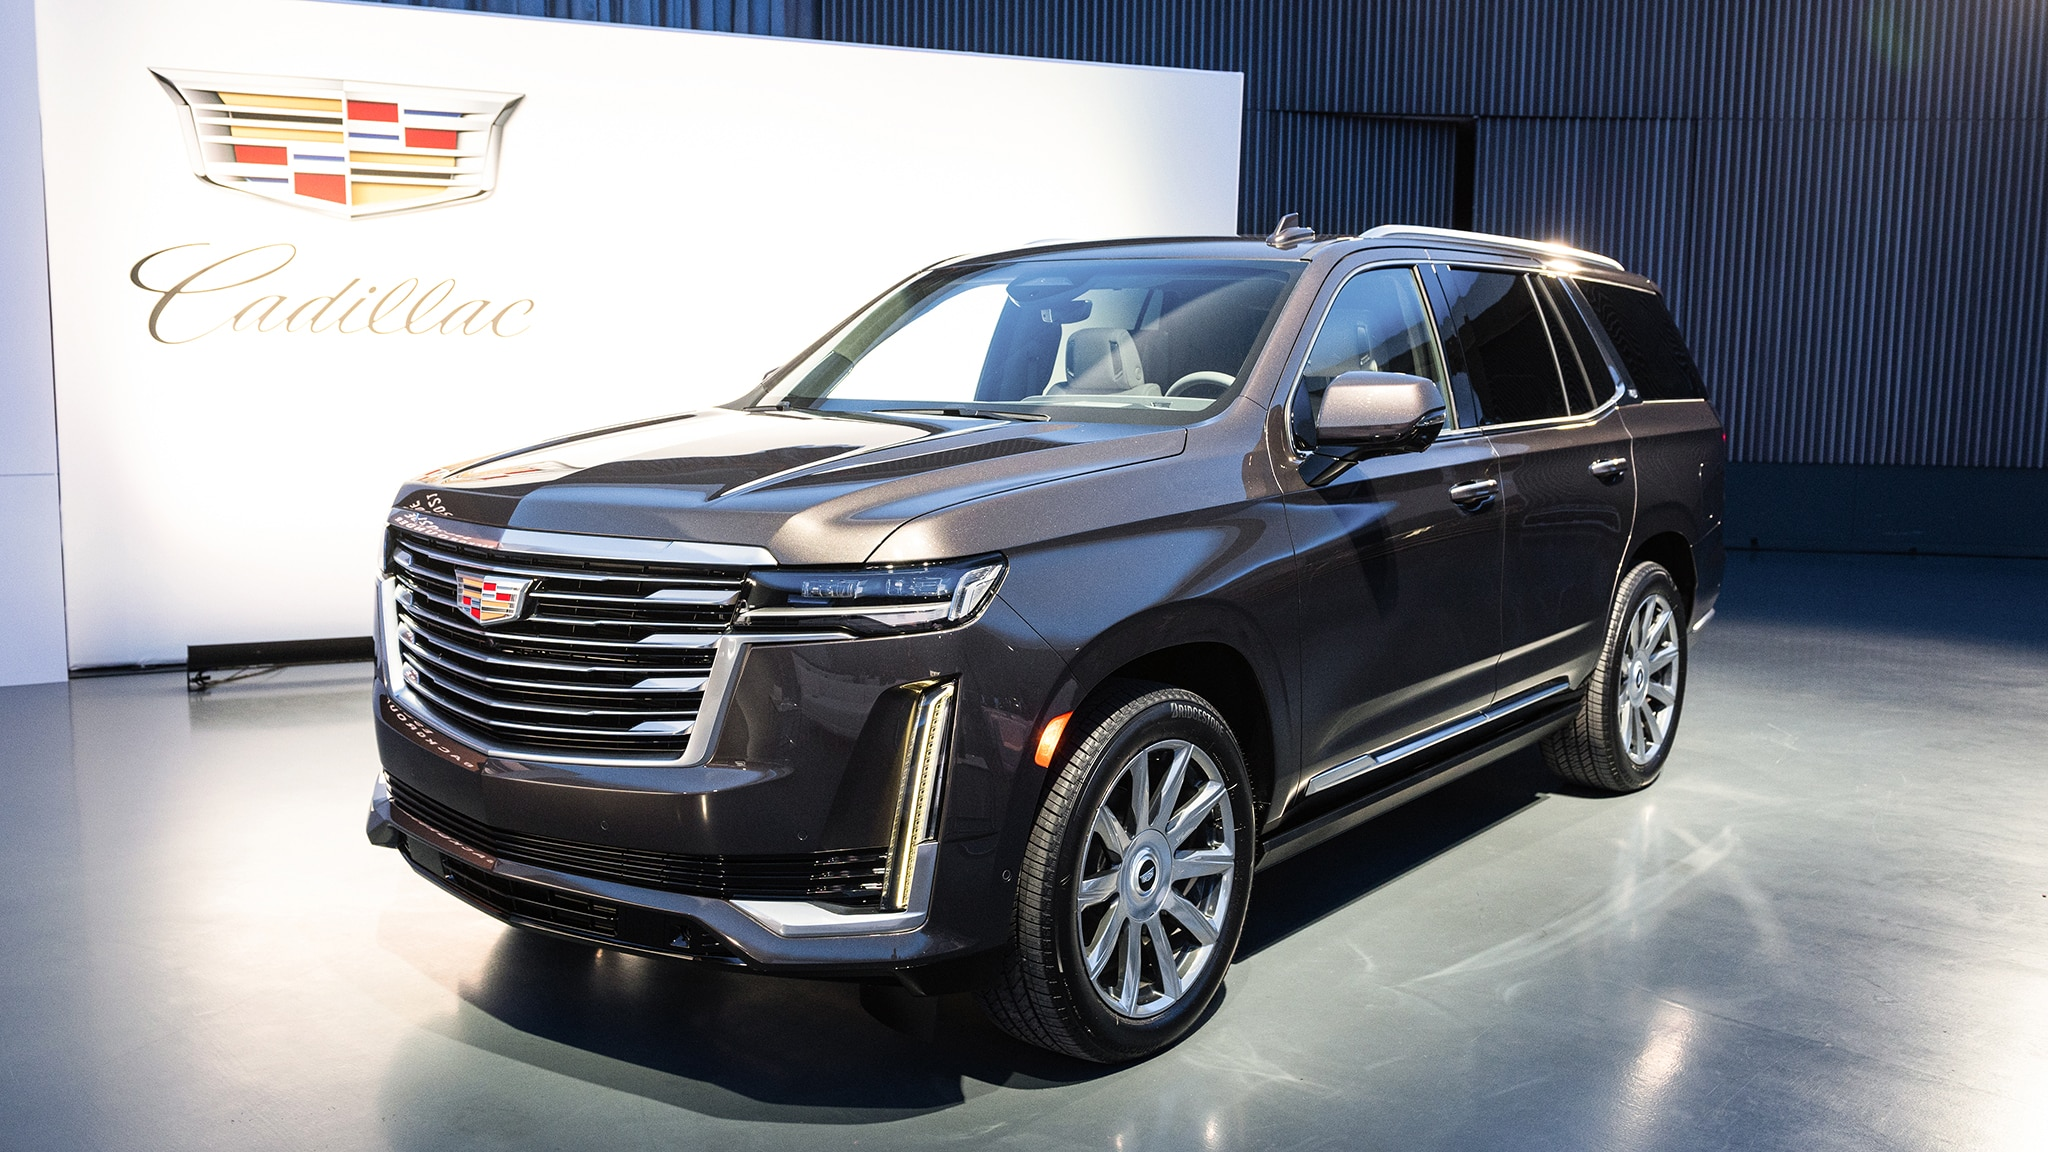 2021 cadillac escalade design and styling